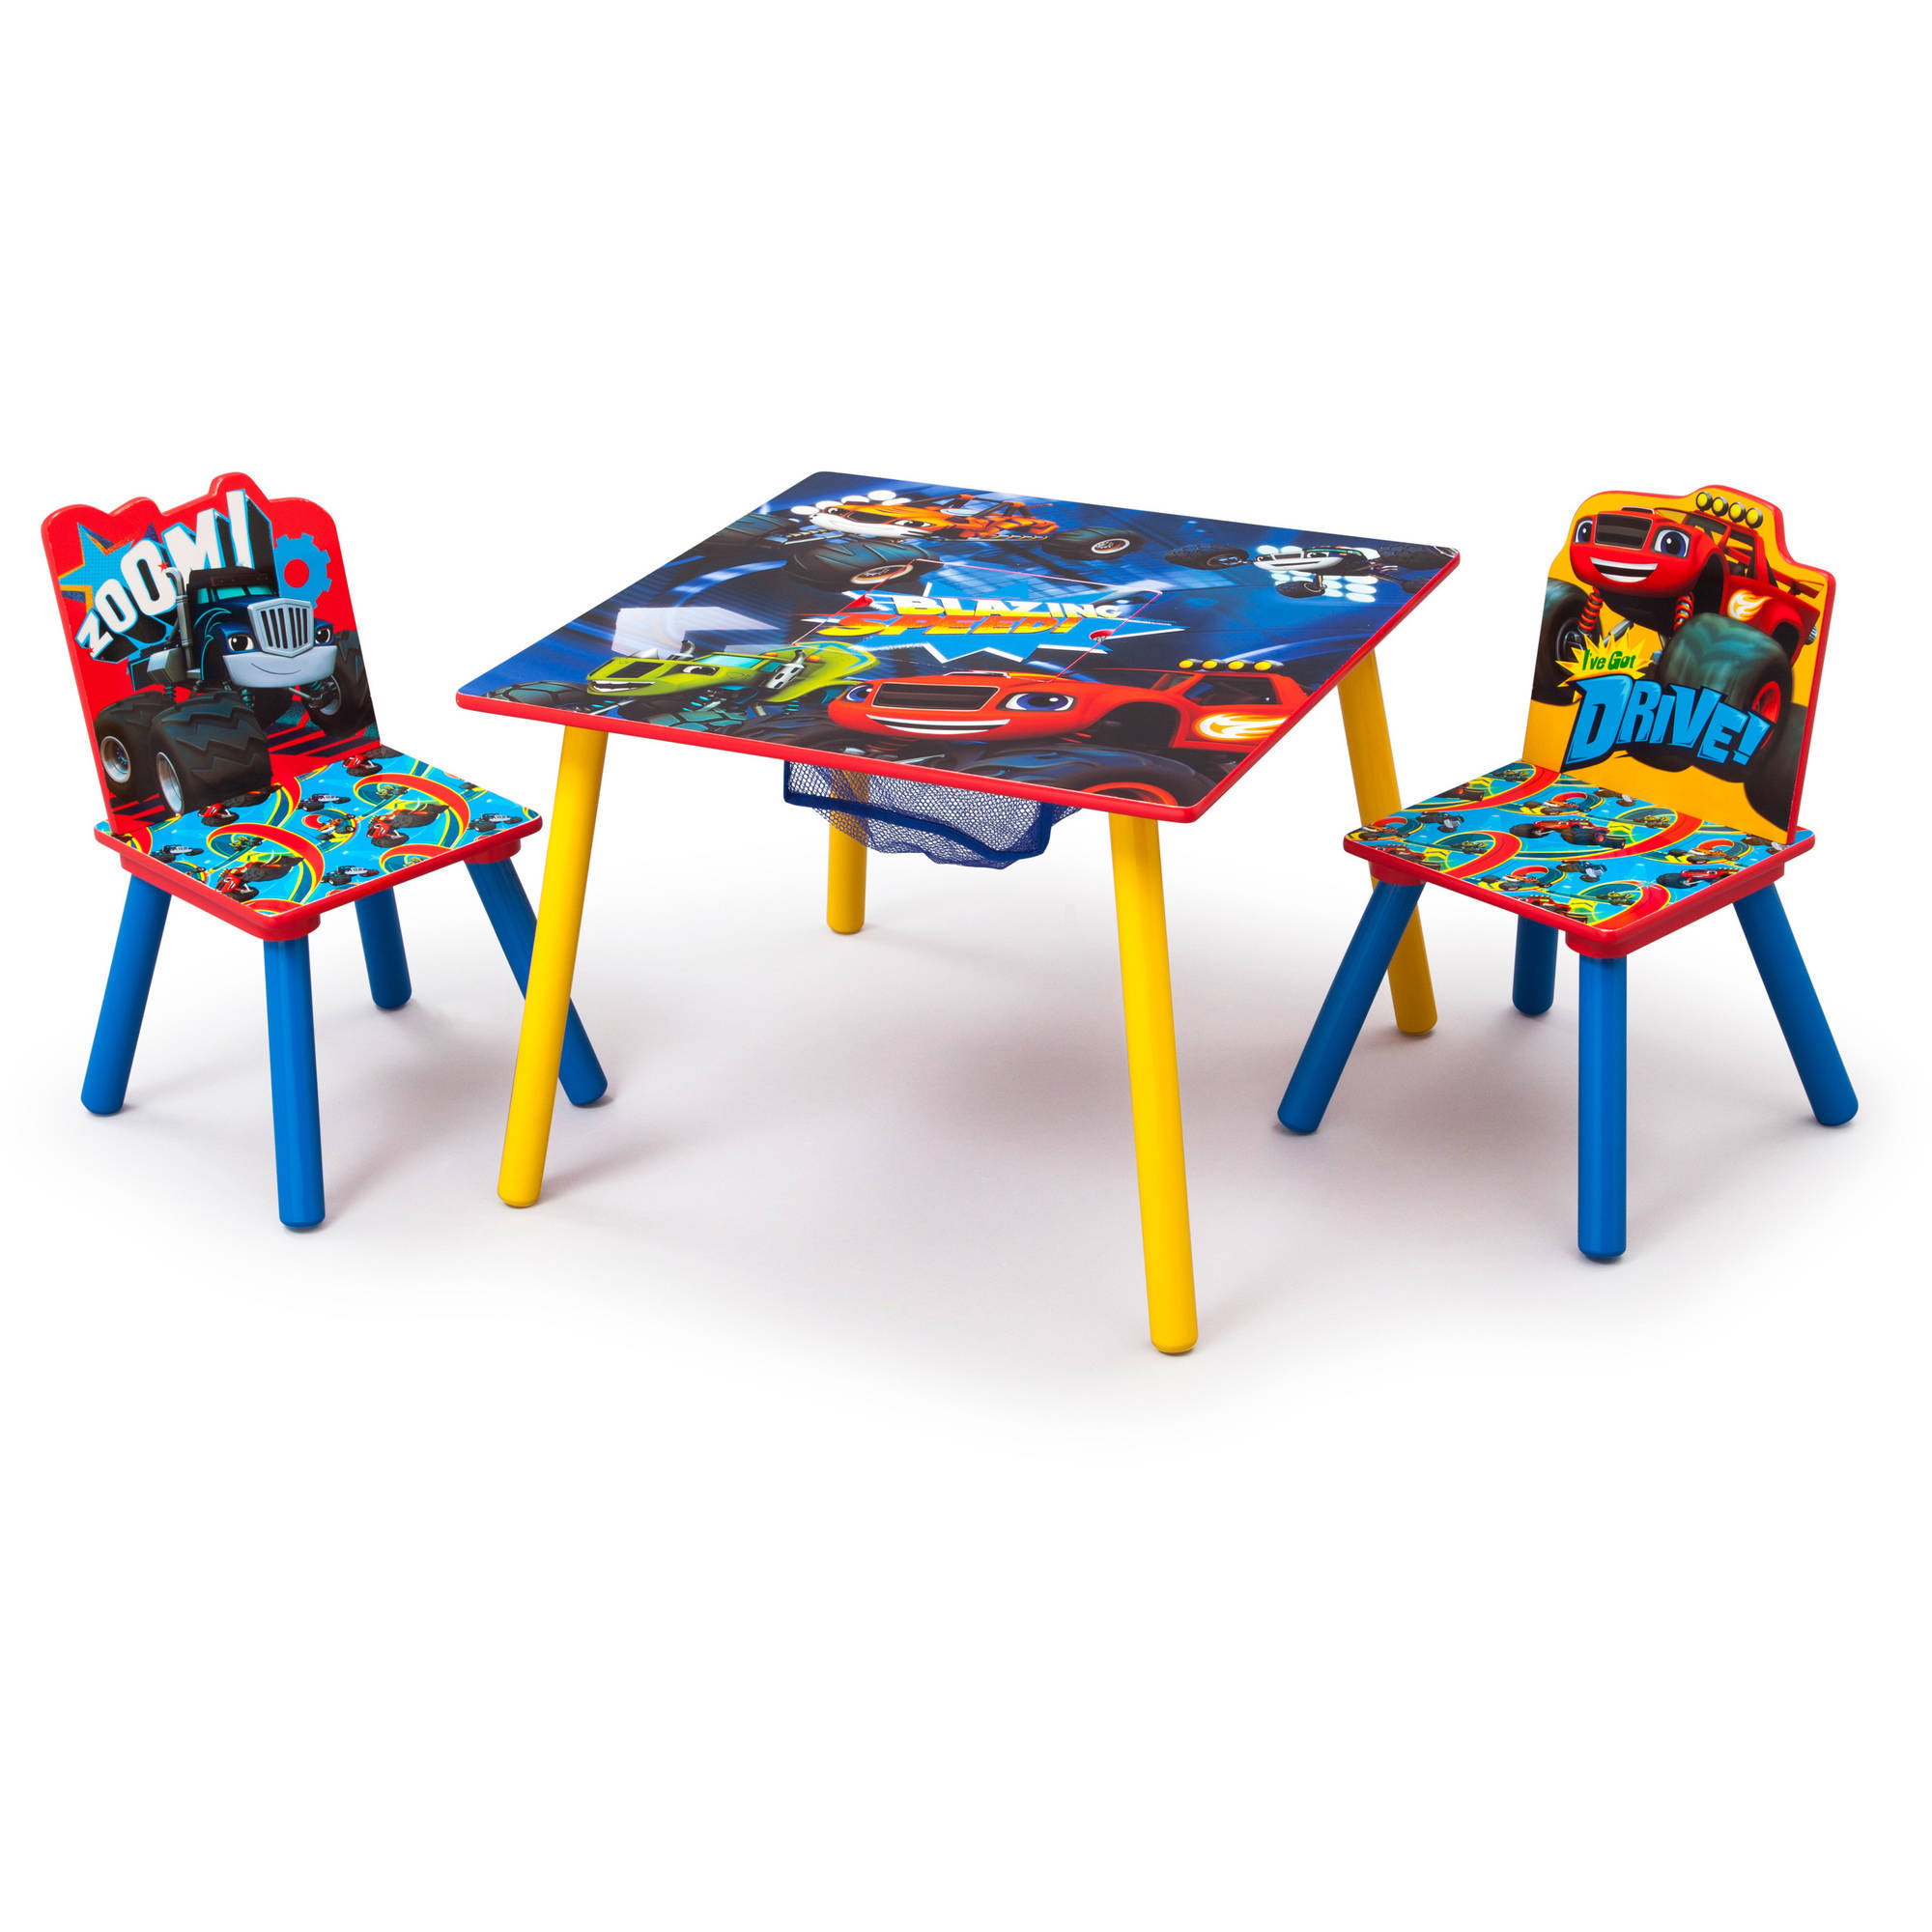 Blaze and the Monster Machines Table & Chair Set with Storage by Delta Children